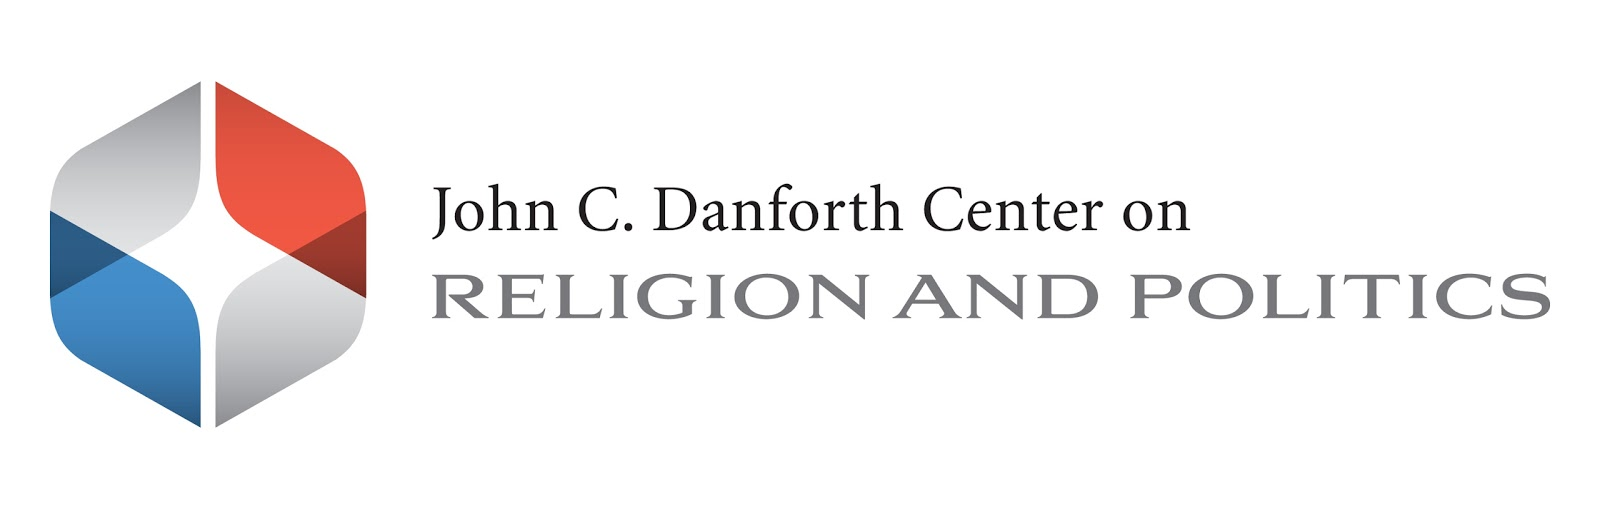 inaugural danforth distinguished lectures in religion and politics